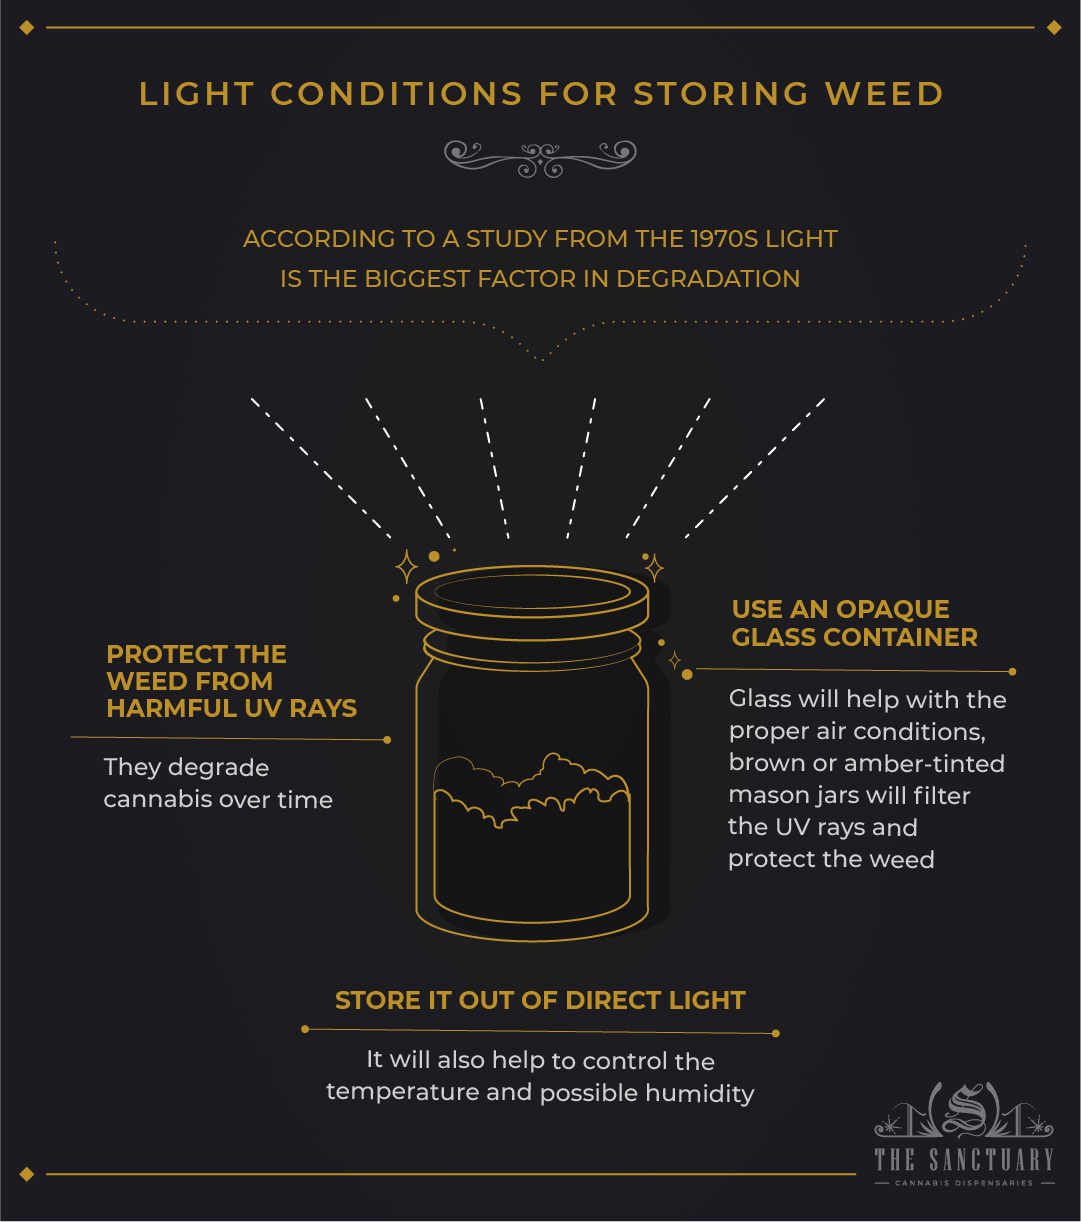 Light conditions for storing weed